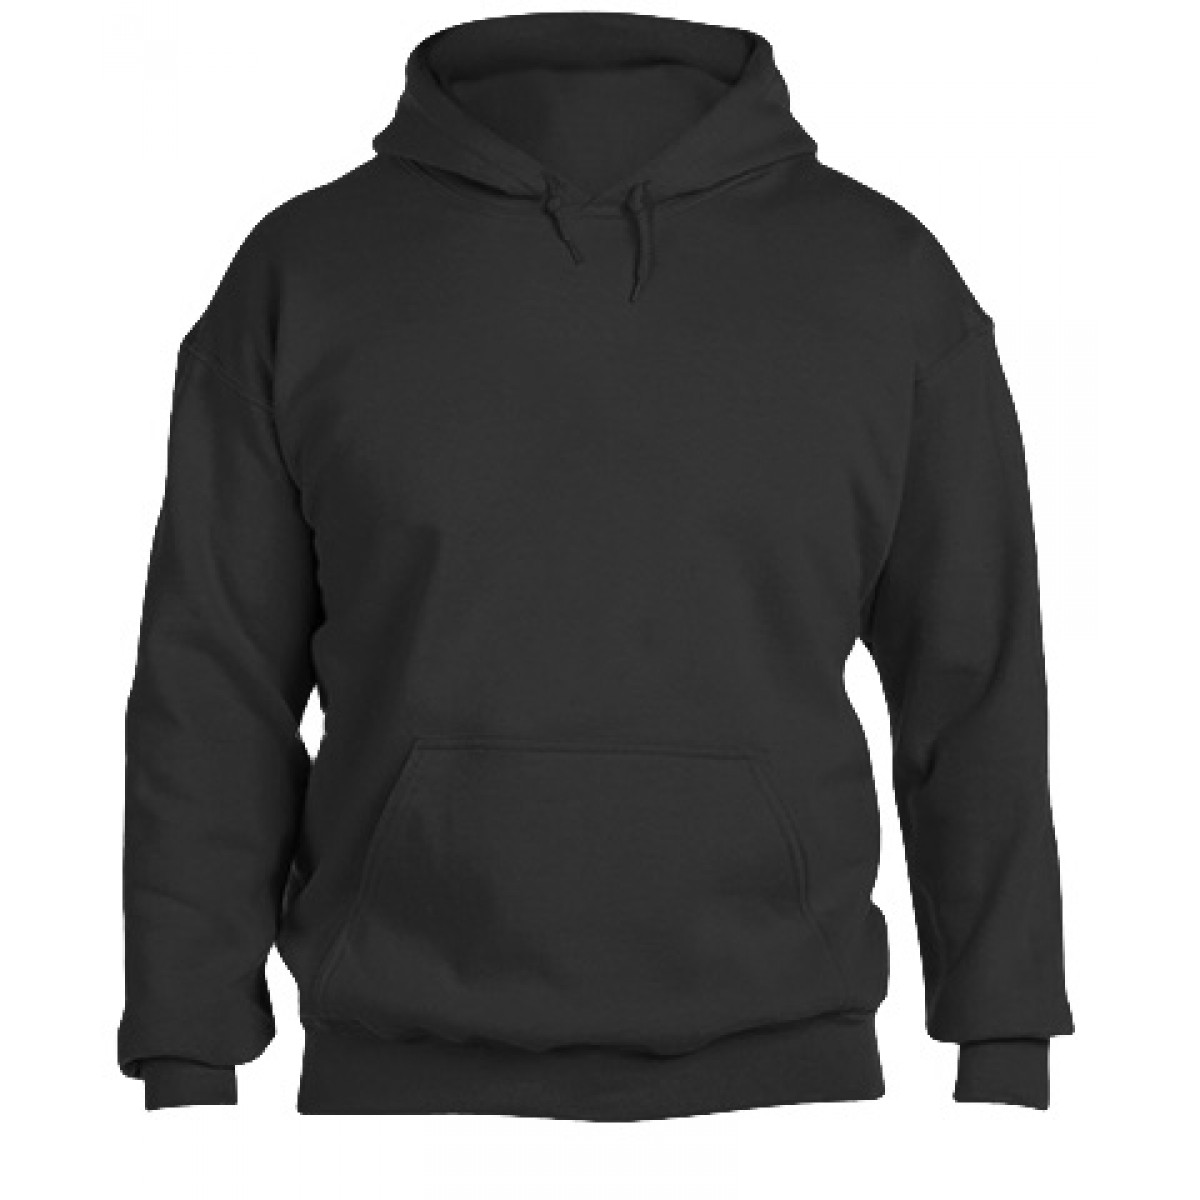 Solid Hooded Sweatshirt  50/50 Heavy Blend-Black-2XL